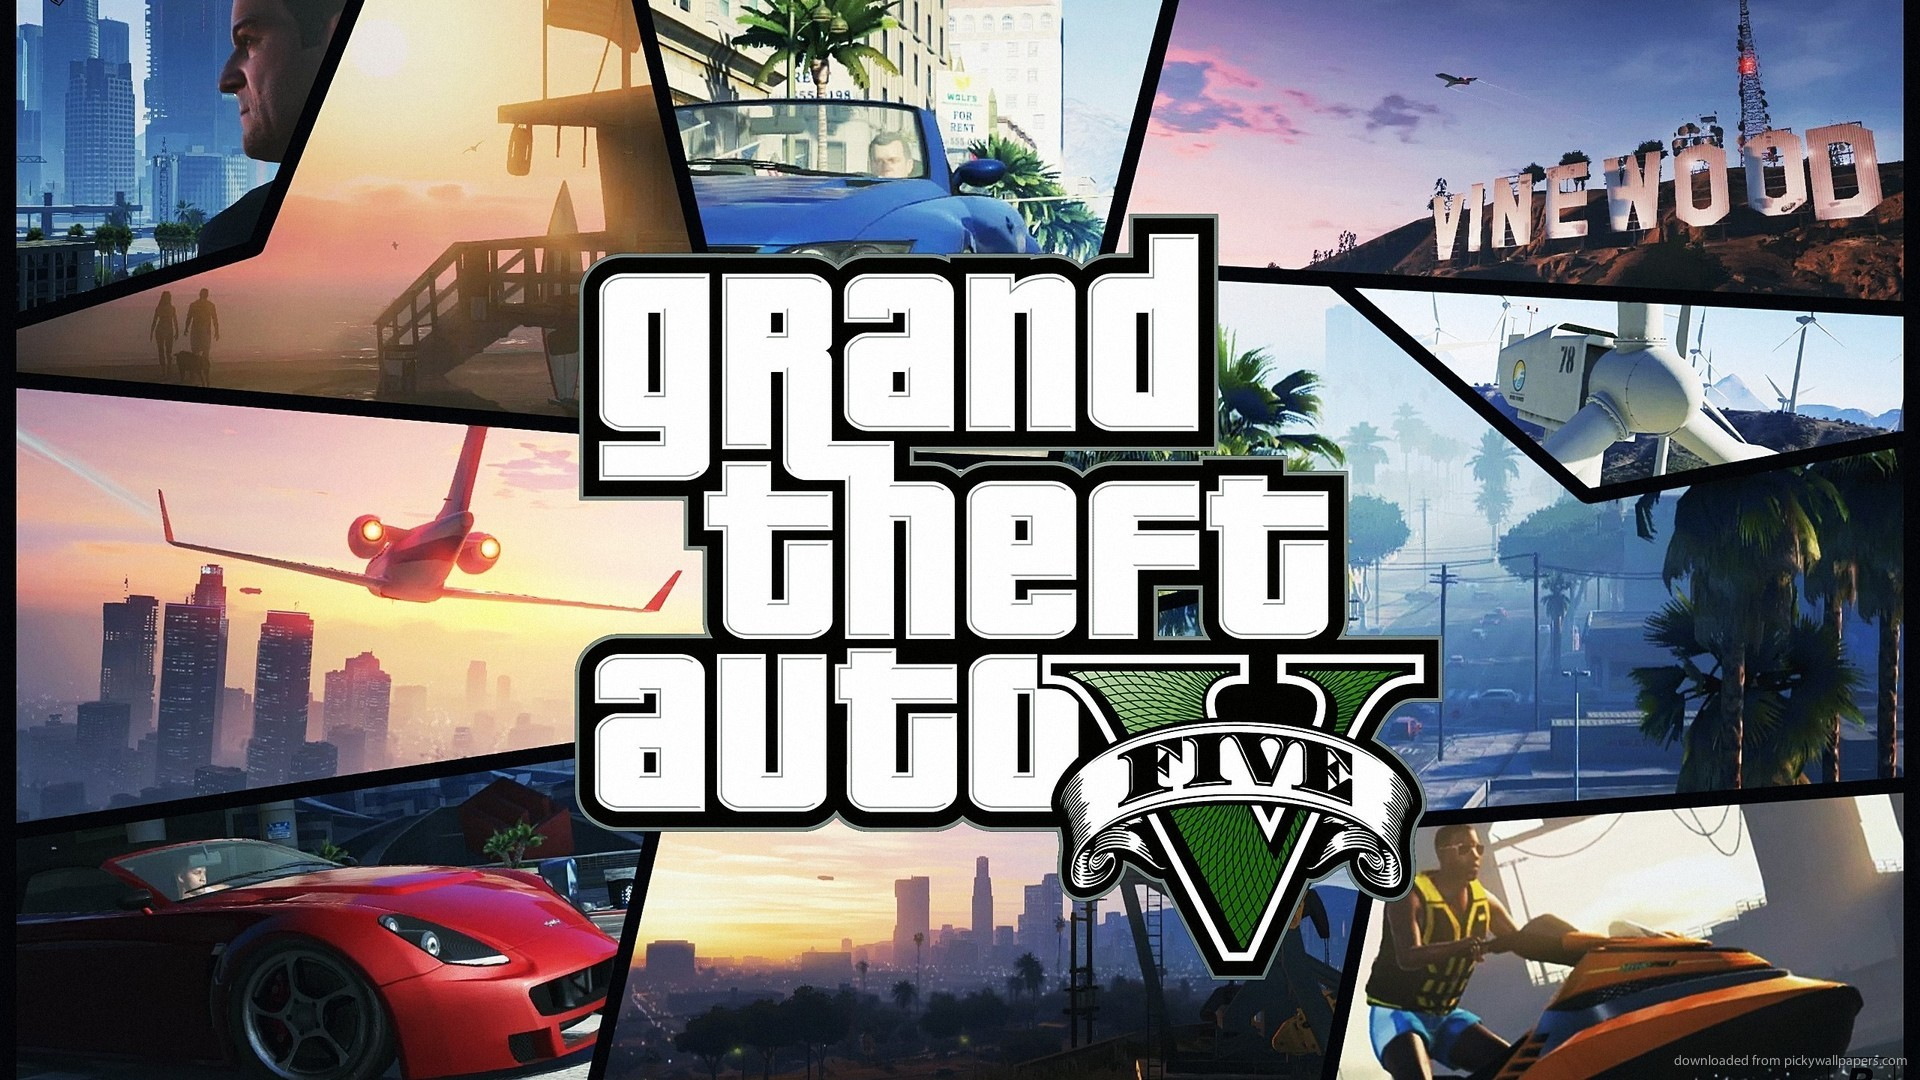 Gta 5 Background Download Free Cool Full Hd Backgrounds For